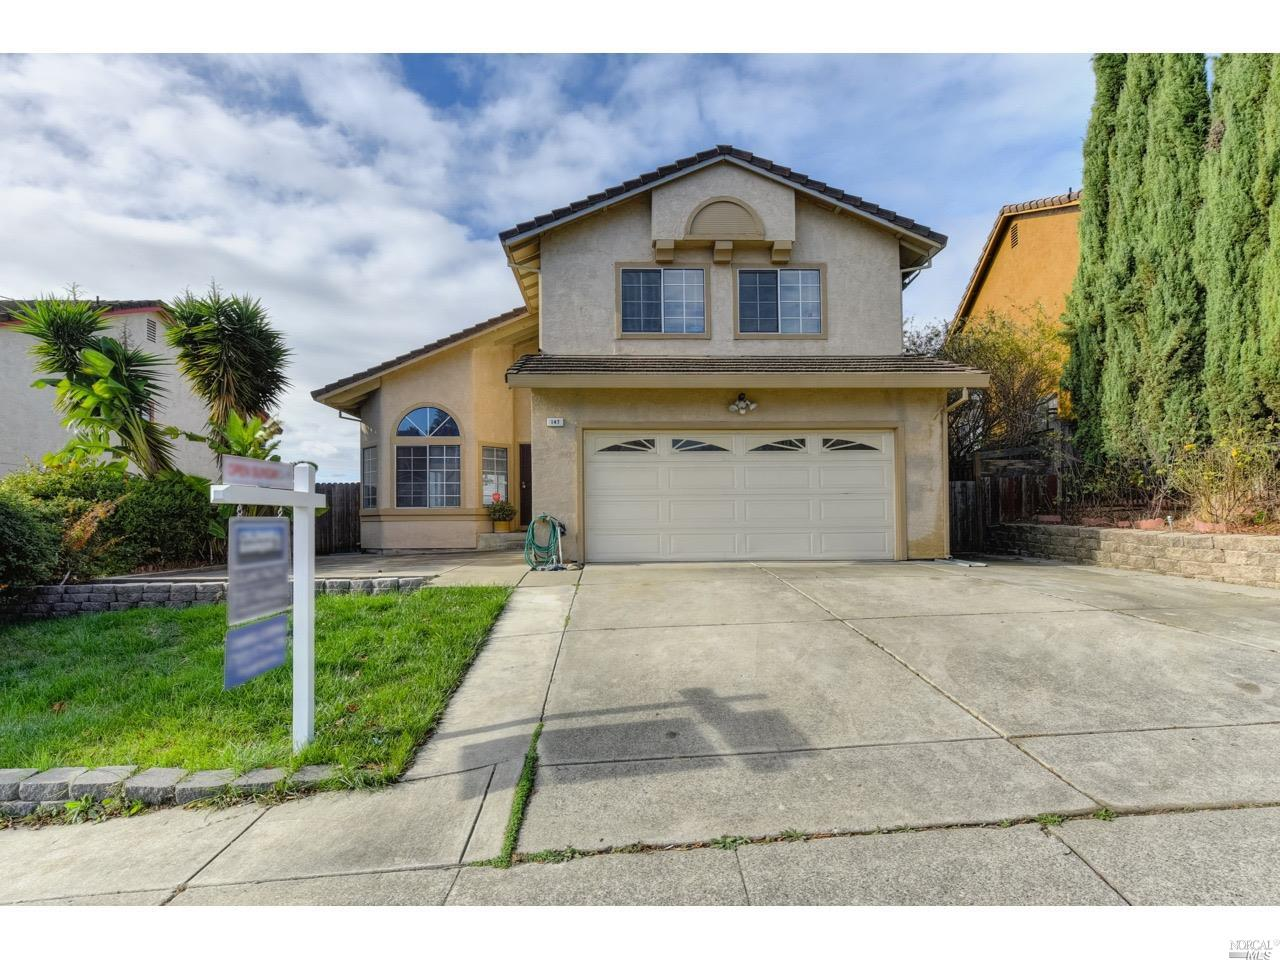 This home features fantastic views of the Napa river from the kitchen, living room, family room and